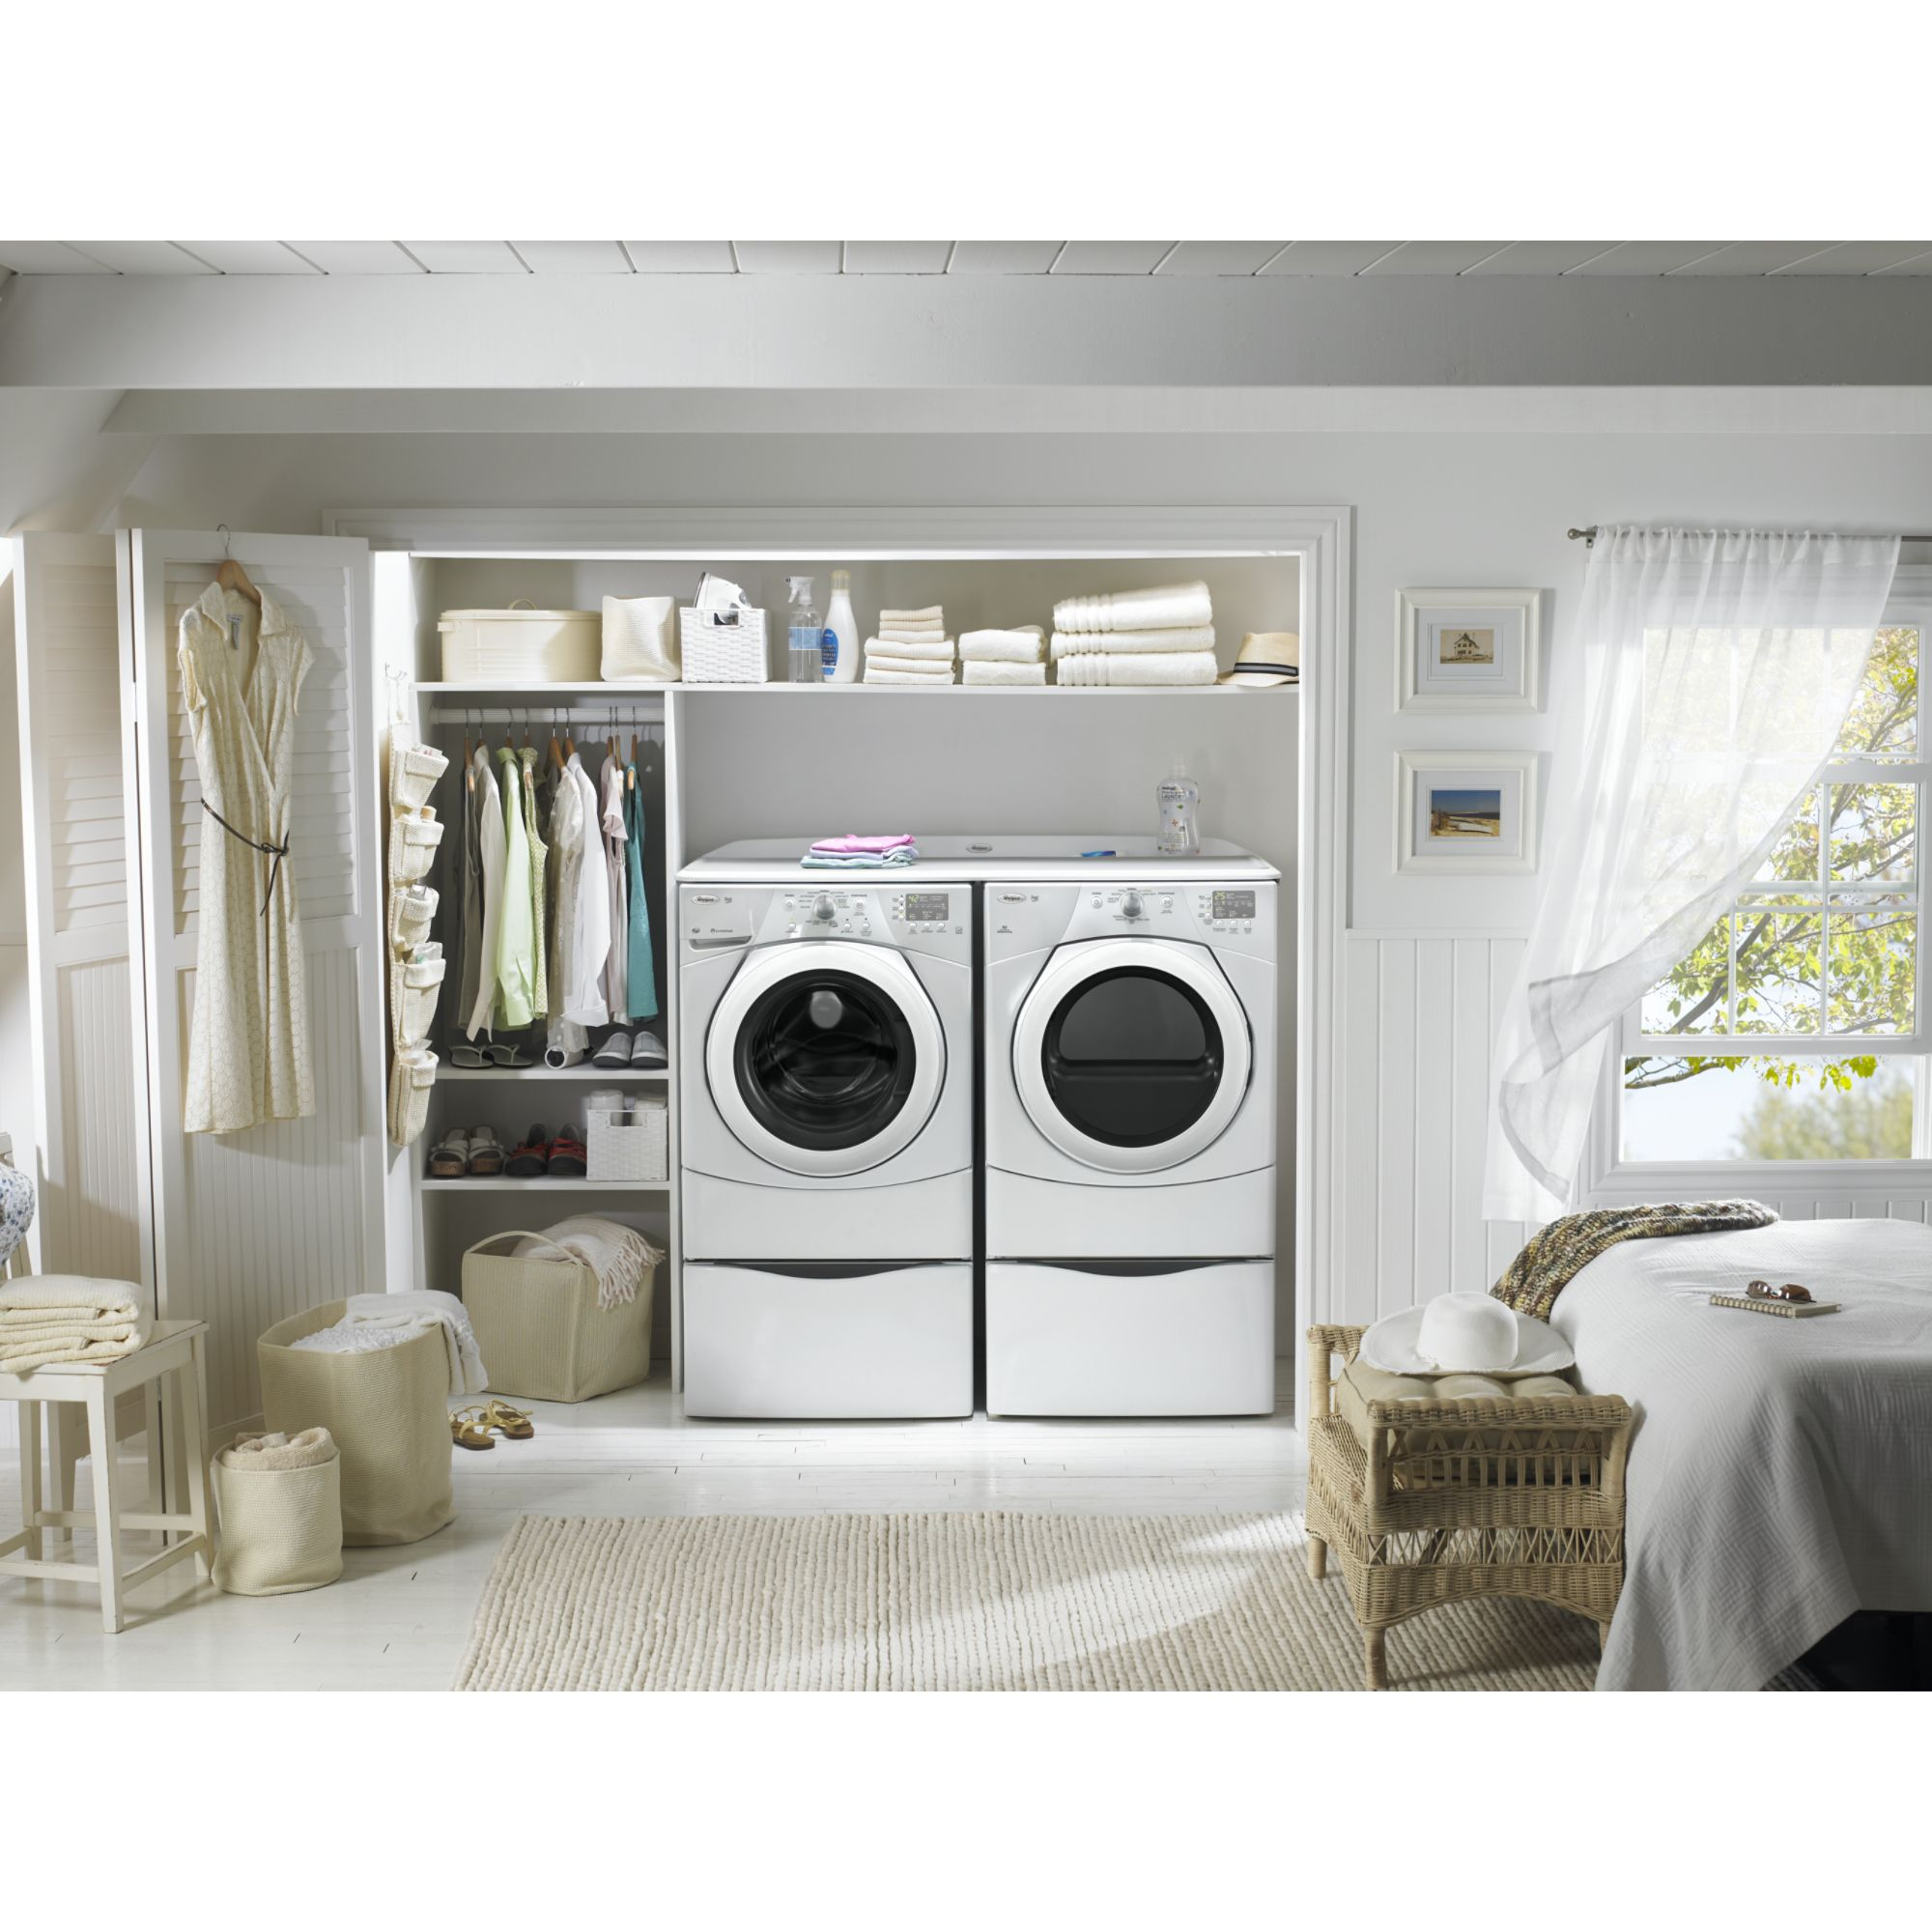 Whirlpool 6.7 cu. ft. Electric Dryer w/ Wrinkle Shield™ Plus Option - White